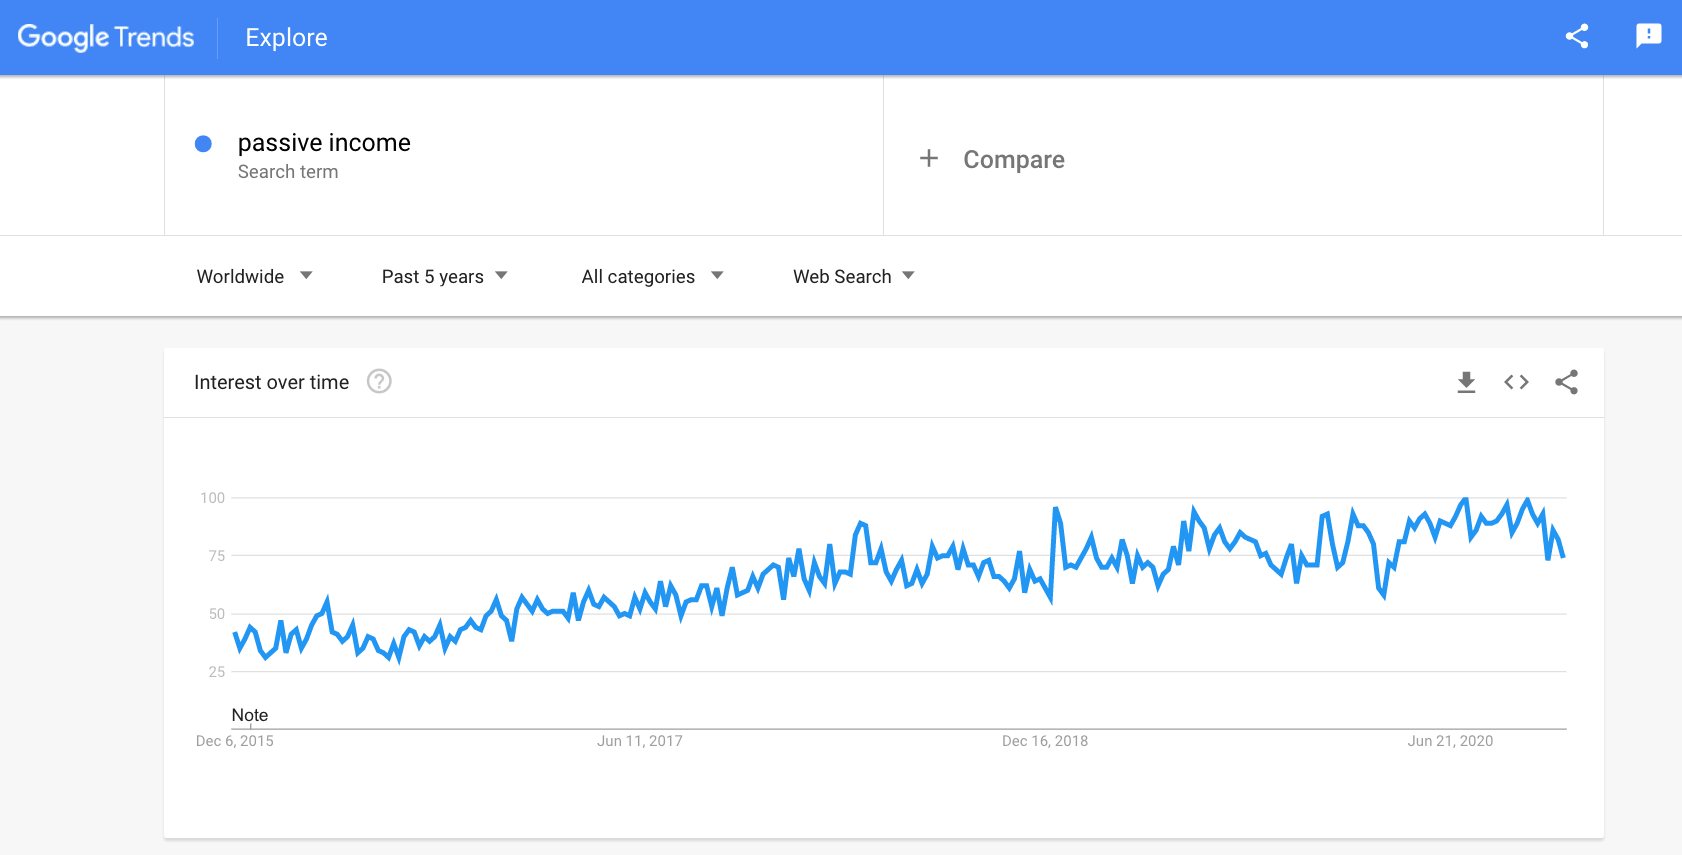 a picture showing how often people search for passive income streams